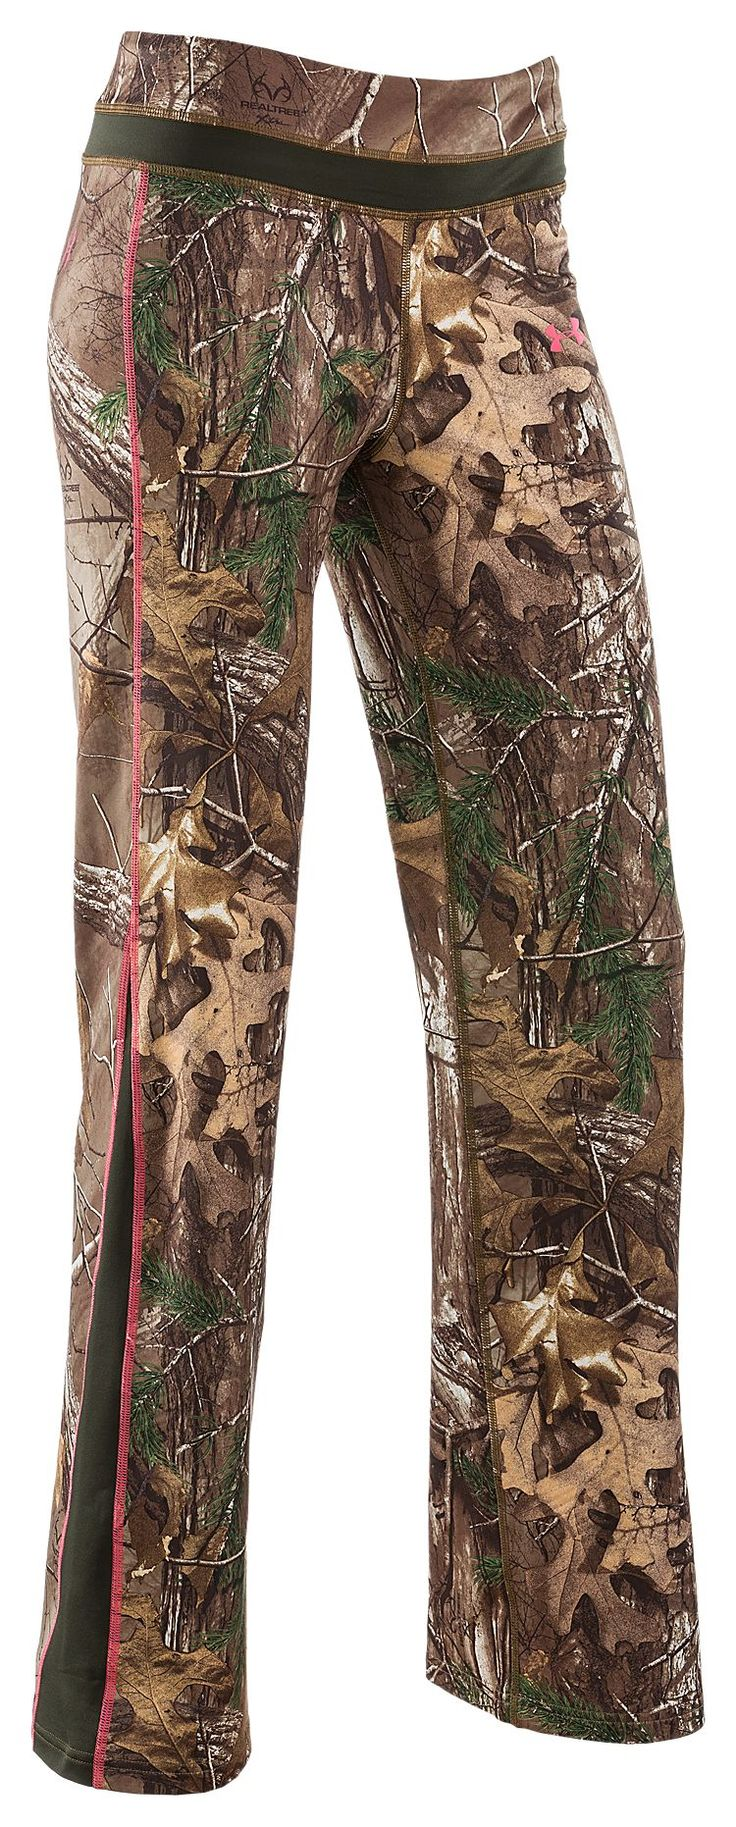 Under Armour ColdGear Infrared Scent Control EVO Hunting Pants for Ladies | Bass Pro Shops